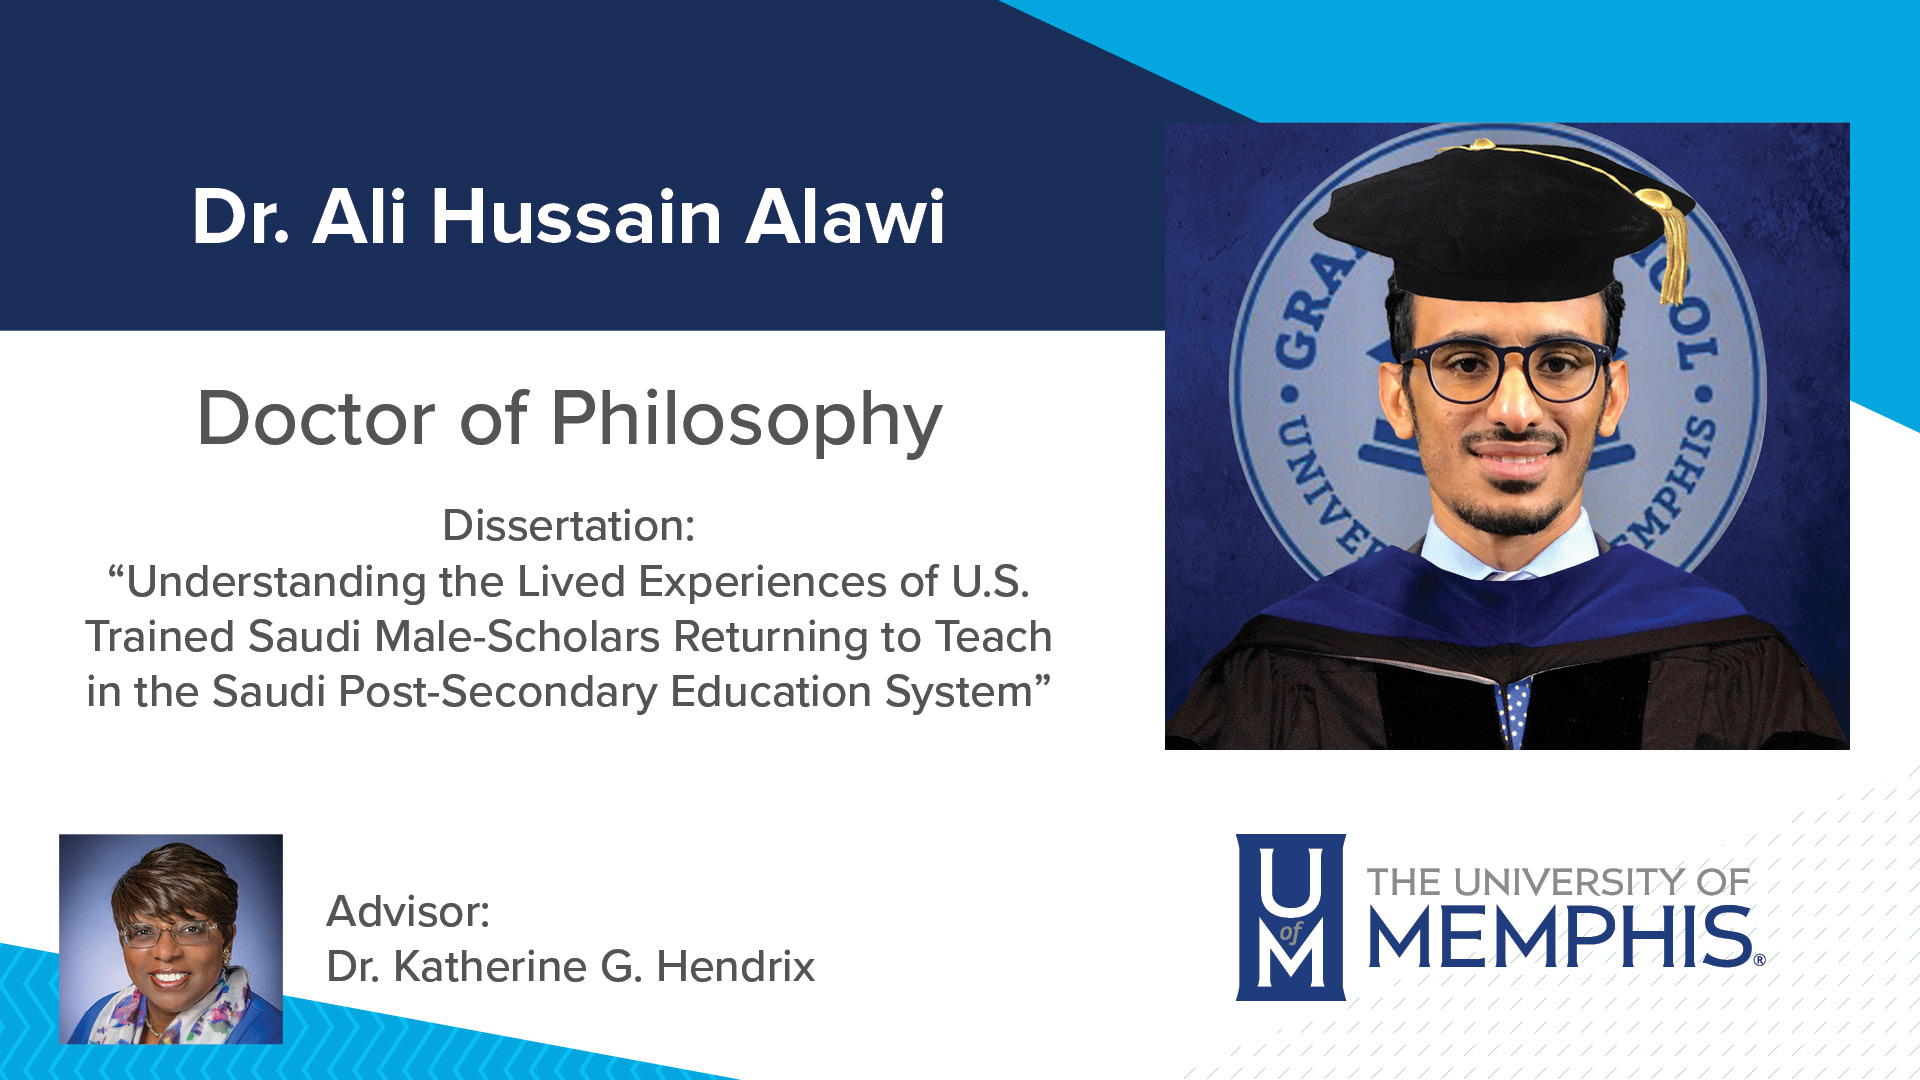 """Dr. Ali Hussain Alawi Dissertation: """"Understanding the Lived Experiences of U.S. Trained Saudi Male-Scholars Returning to Teach in the Saudi Post-Secondary Education System"""" Major Professor: Dr. Katherine G. Hendrix"""